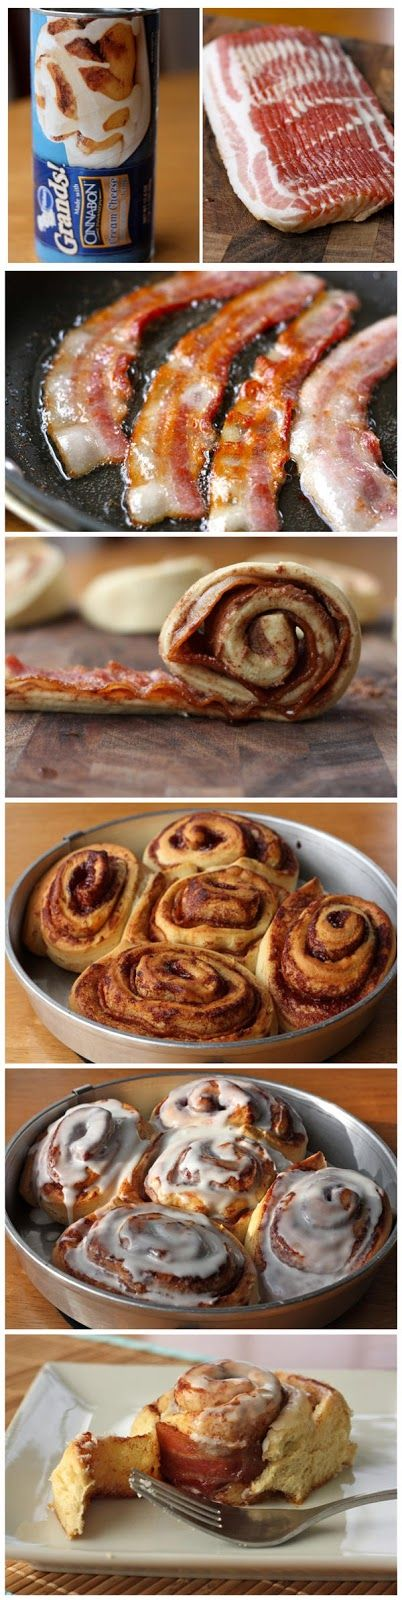 Recipe Best: Bacon Cinnamon Rolls...... Bacon...... Cinnamon Rolls